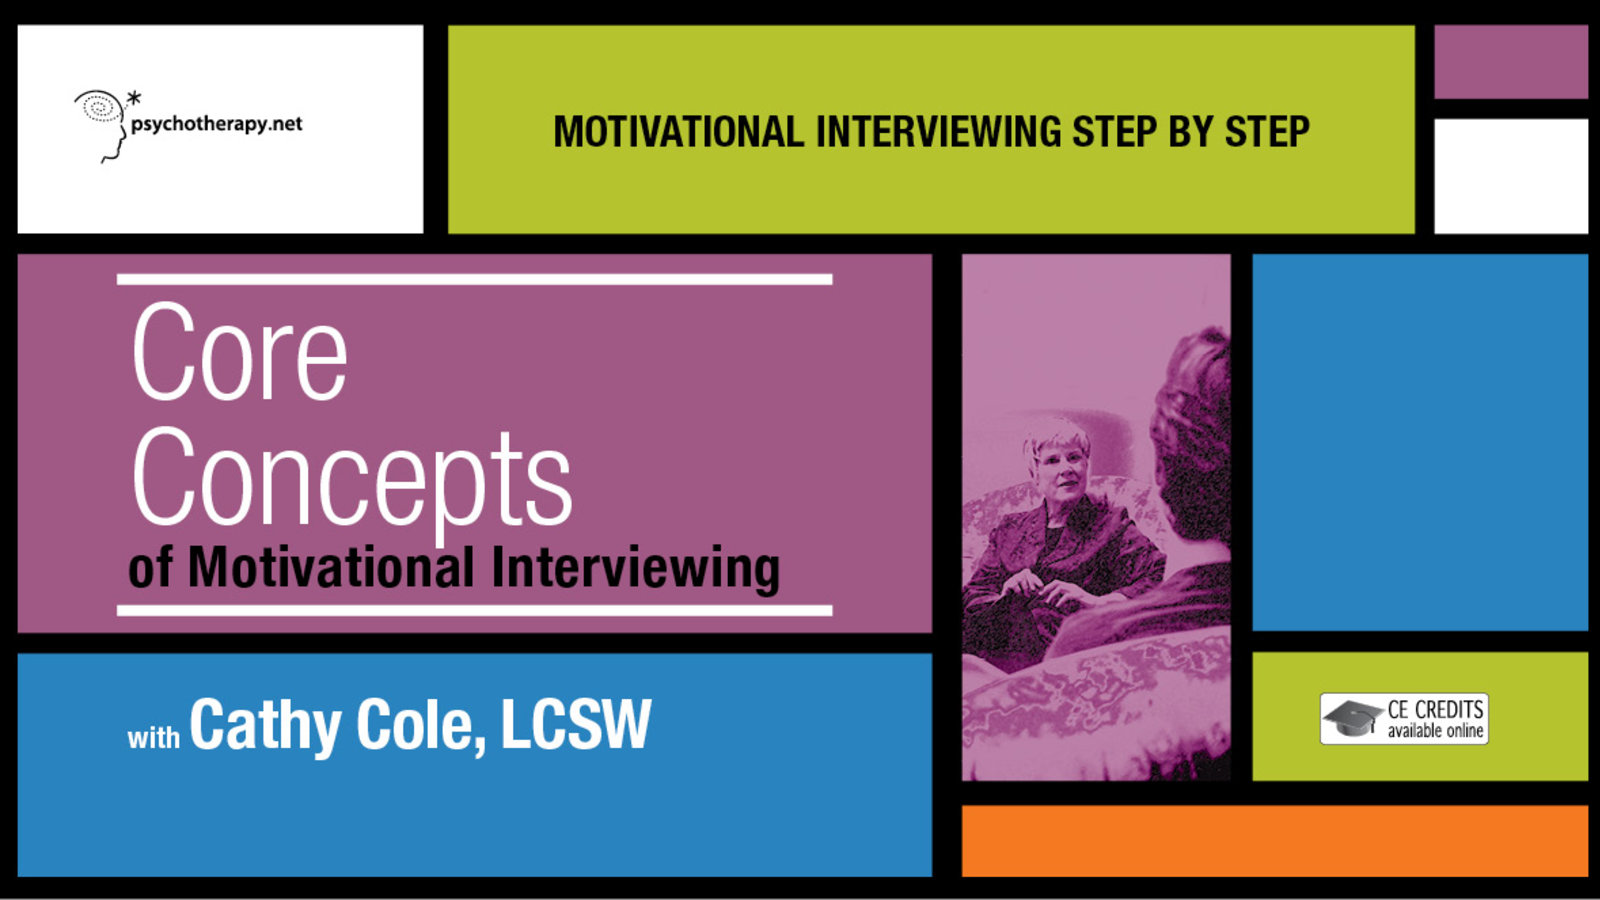 Core Concepts of Motivational Interviewing